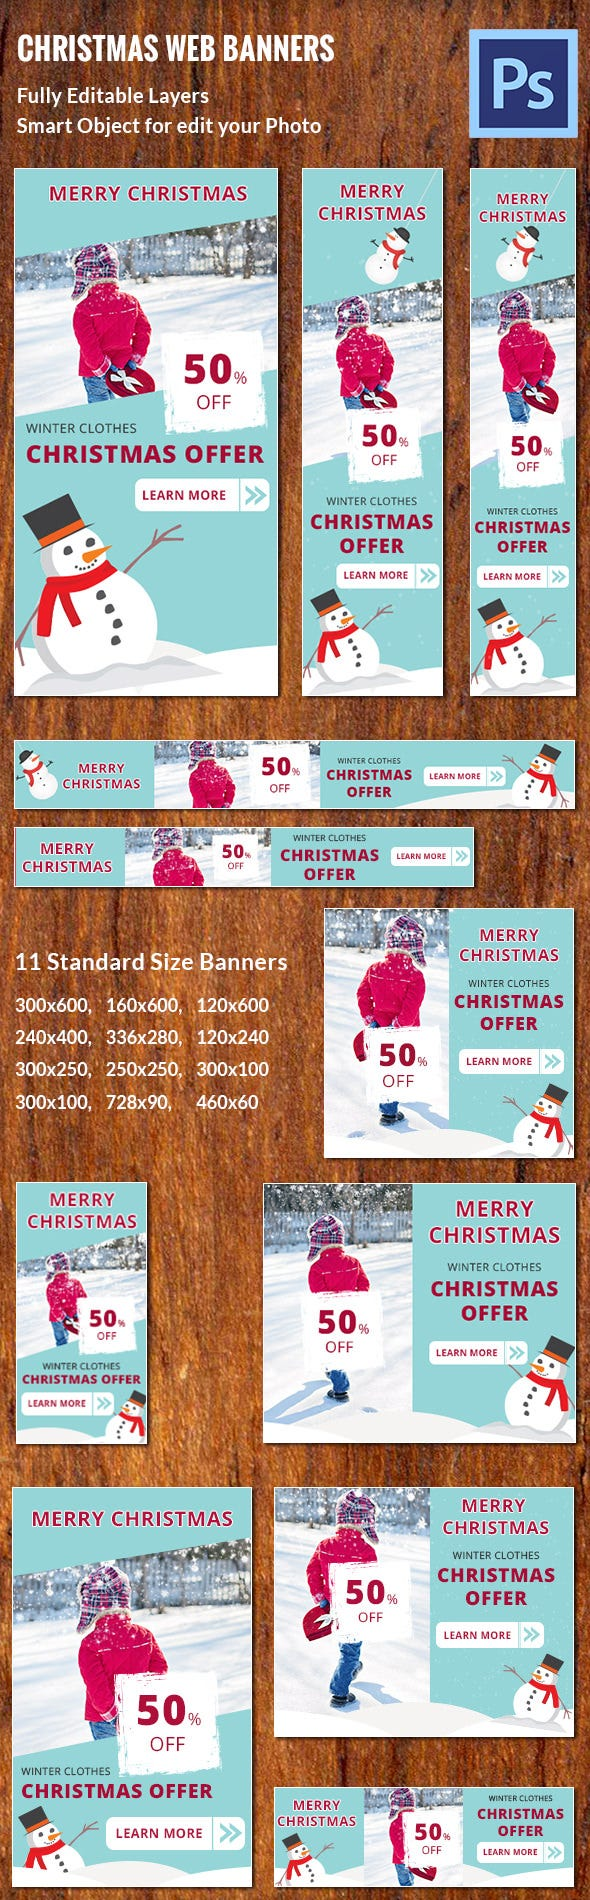 christmas banner ad templates psd ai illustrator printable customizable christmas banner ad template